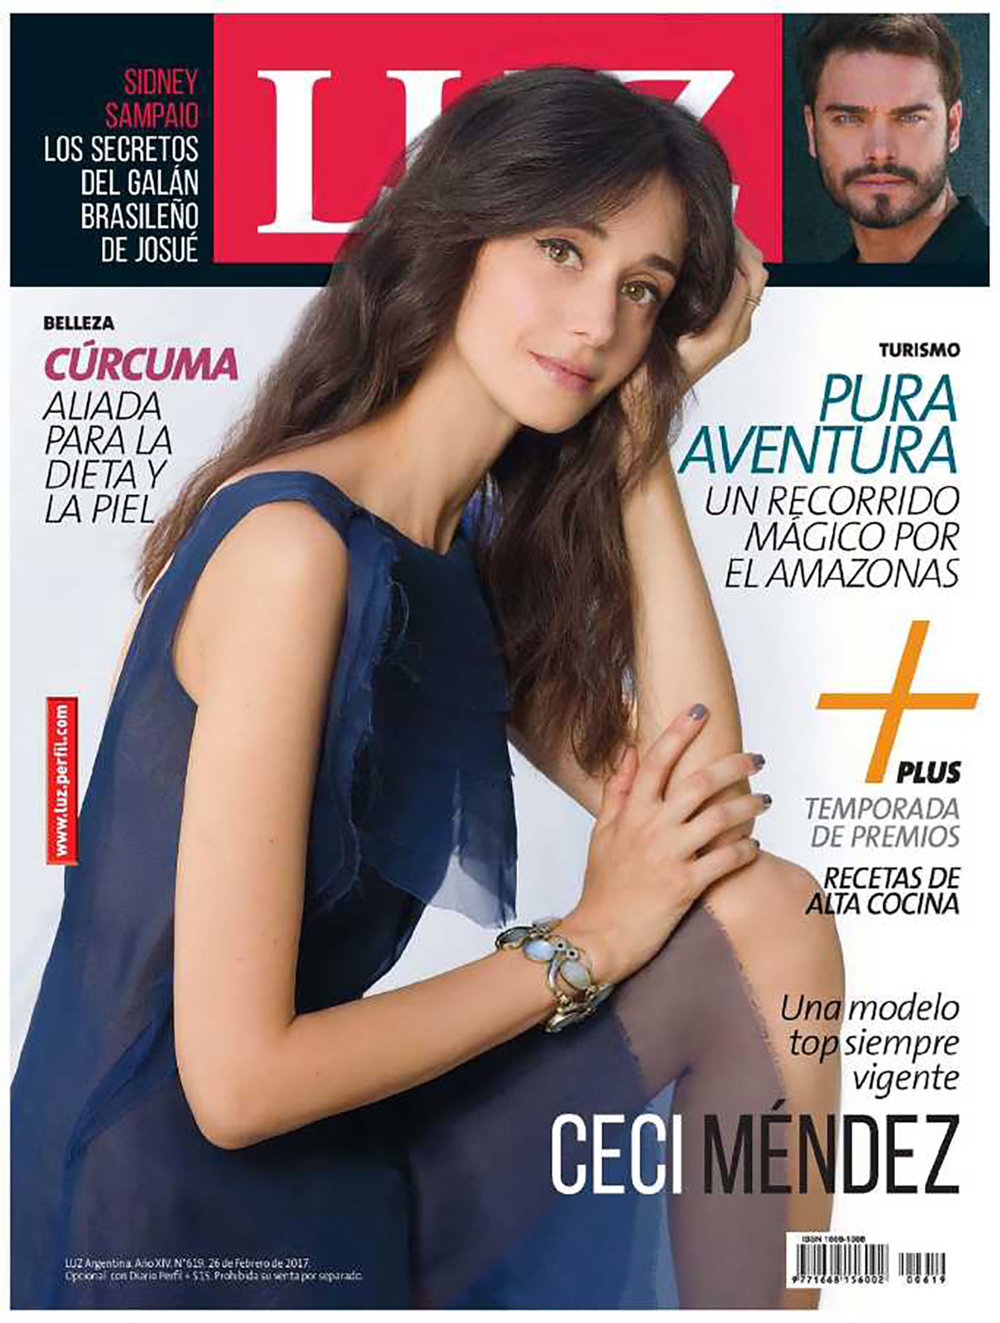 Revista Luz Cover and Interview featuring Ceci Mendez  -